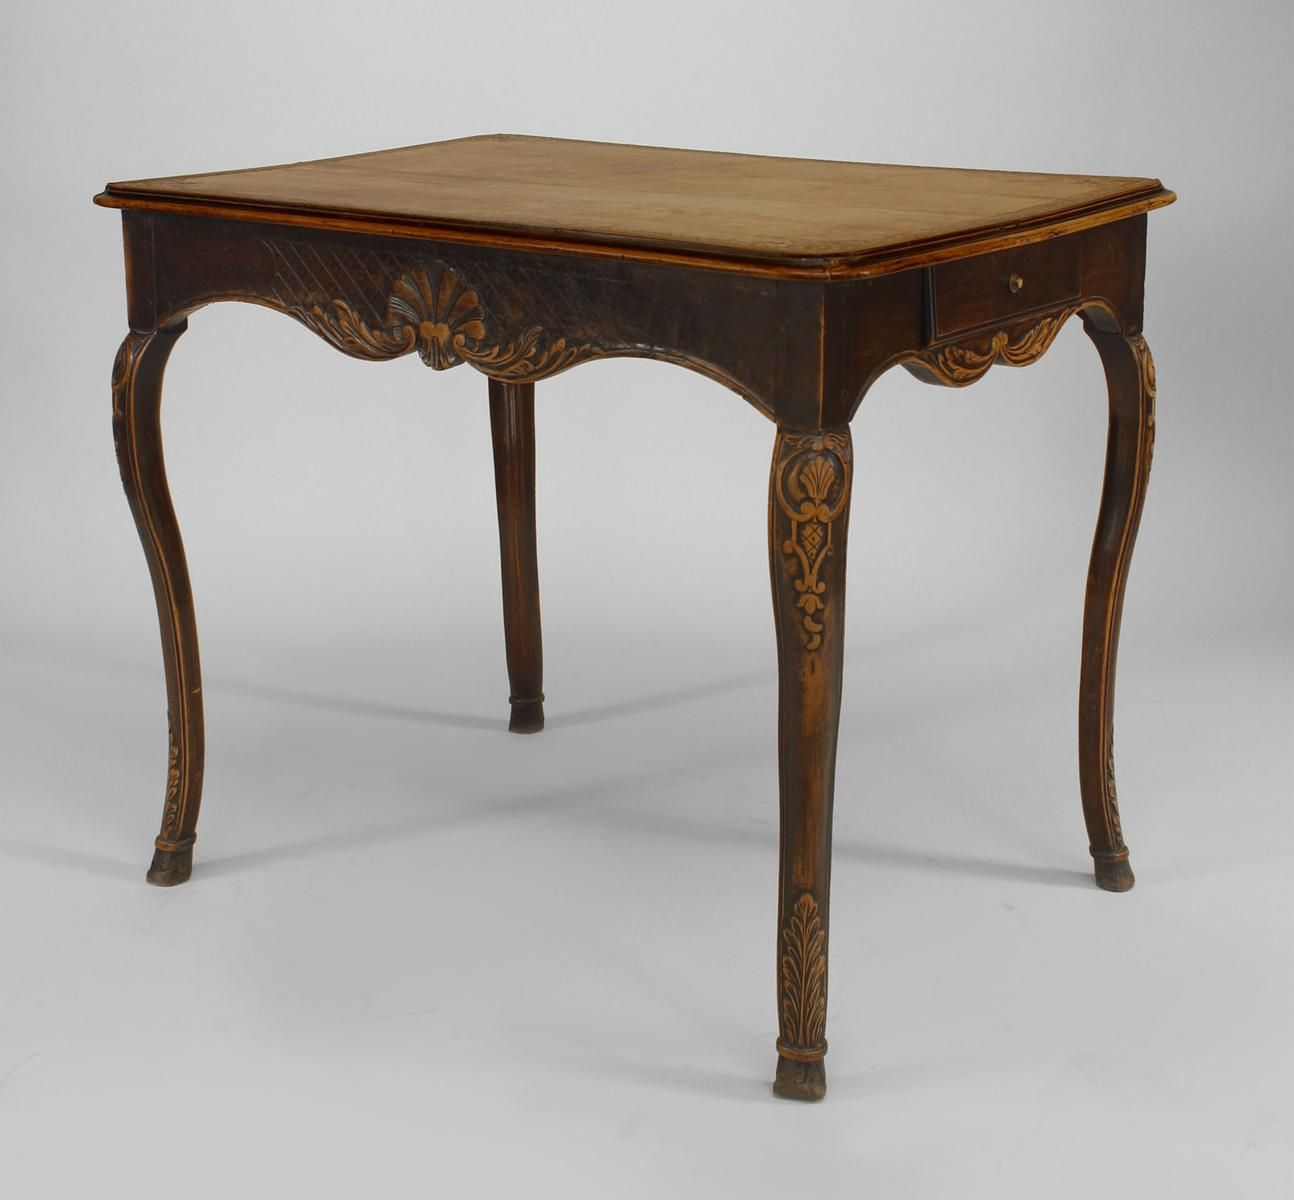 French Provincial Floral Carved End Table French Table Table French Provincial Table